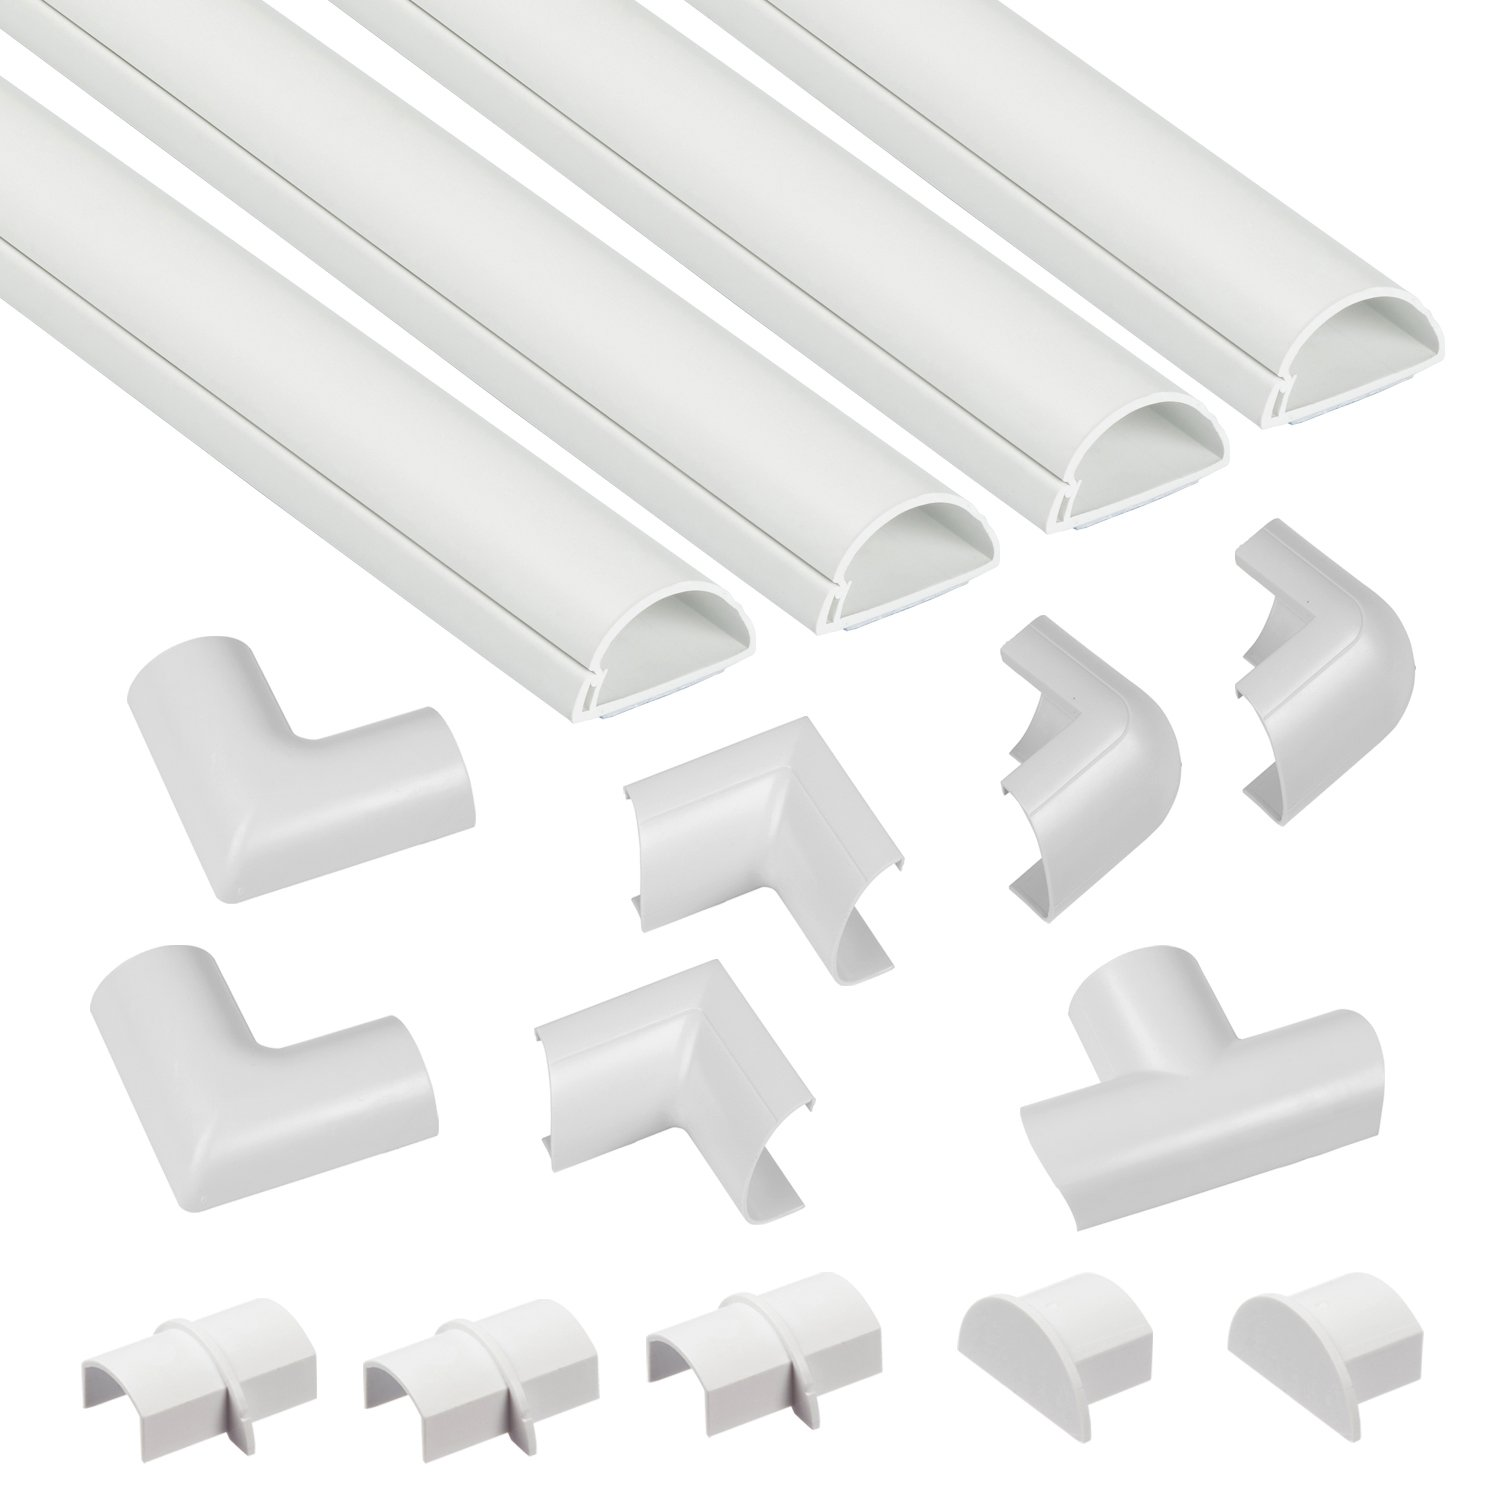 D-Line Mini Cable Raceway Kit | Self-Adhesive Wire Covers | Electrical Raceway, Popular Cable Organizer for Home Theater, TV, Office and Home | 4 x 39 Lengths Per Pack - White